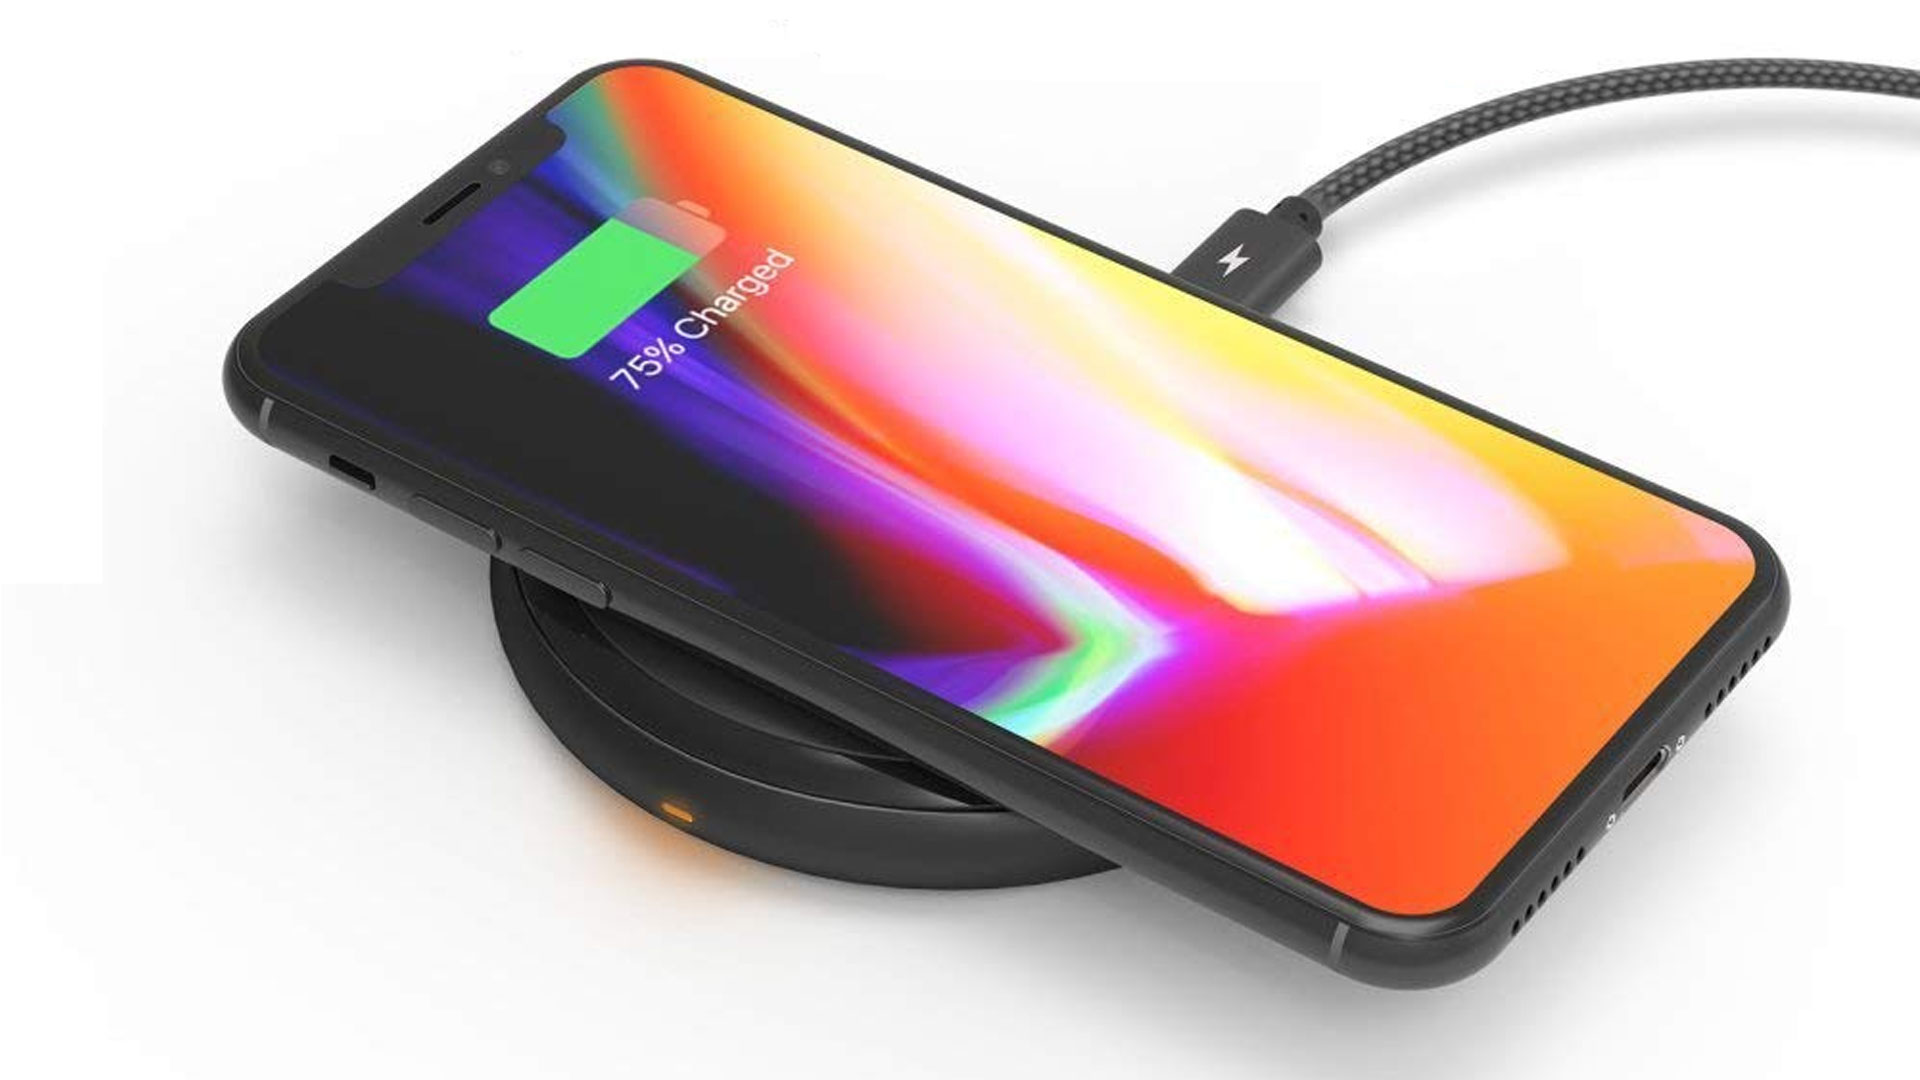 Iphone Cordless Charger Power Up Your Brand New Iphone Xs Xr Max W This Fast Wireless